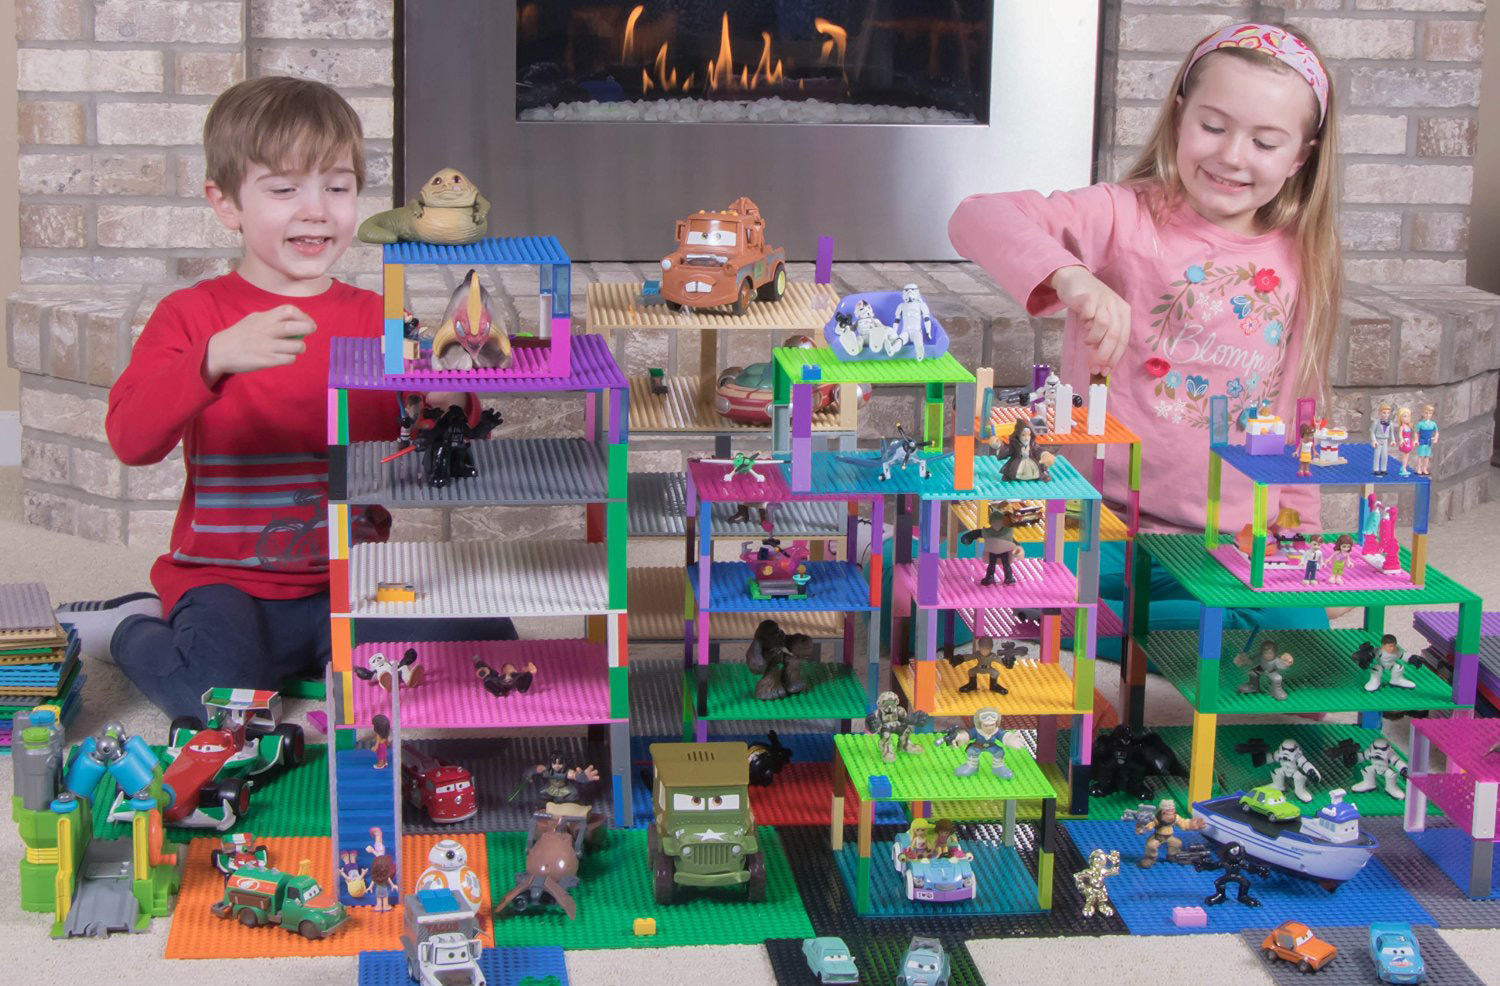 Boy and girl playing with Strictly Briks and other toys